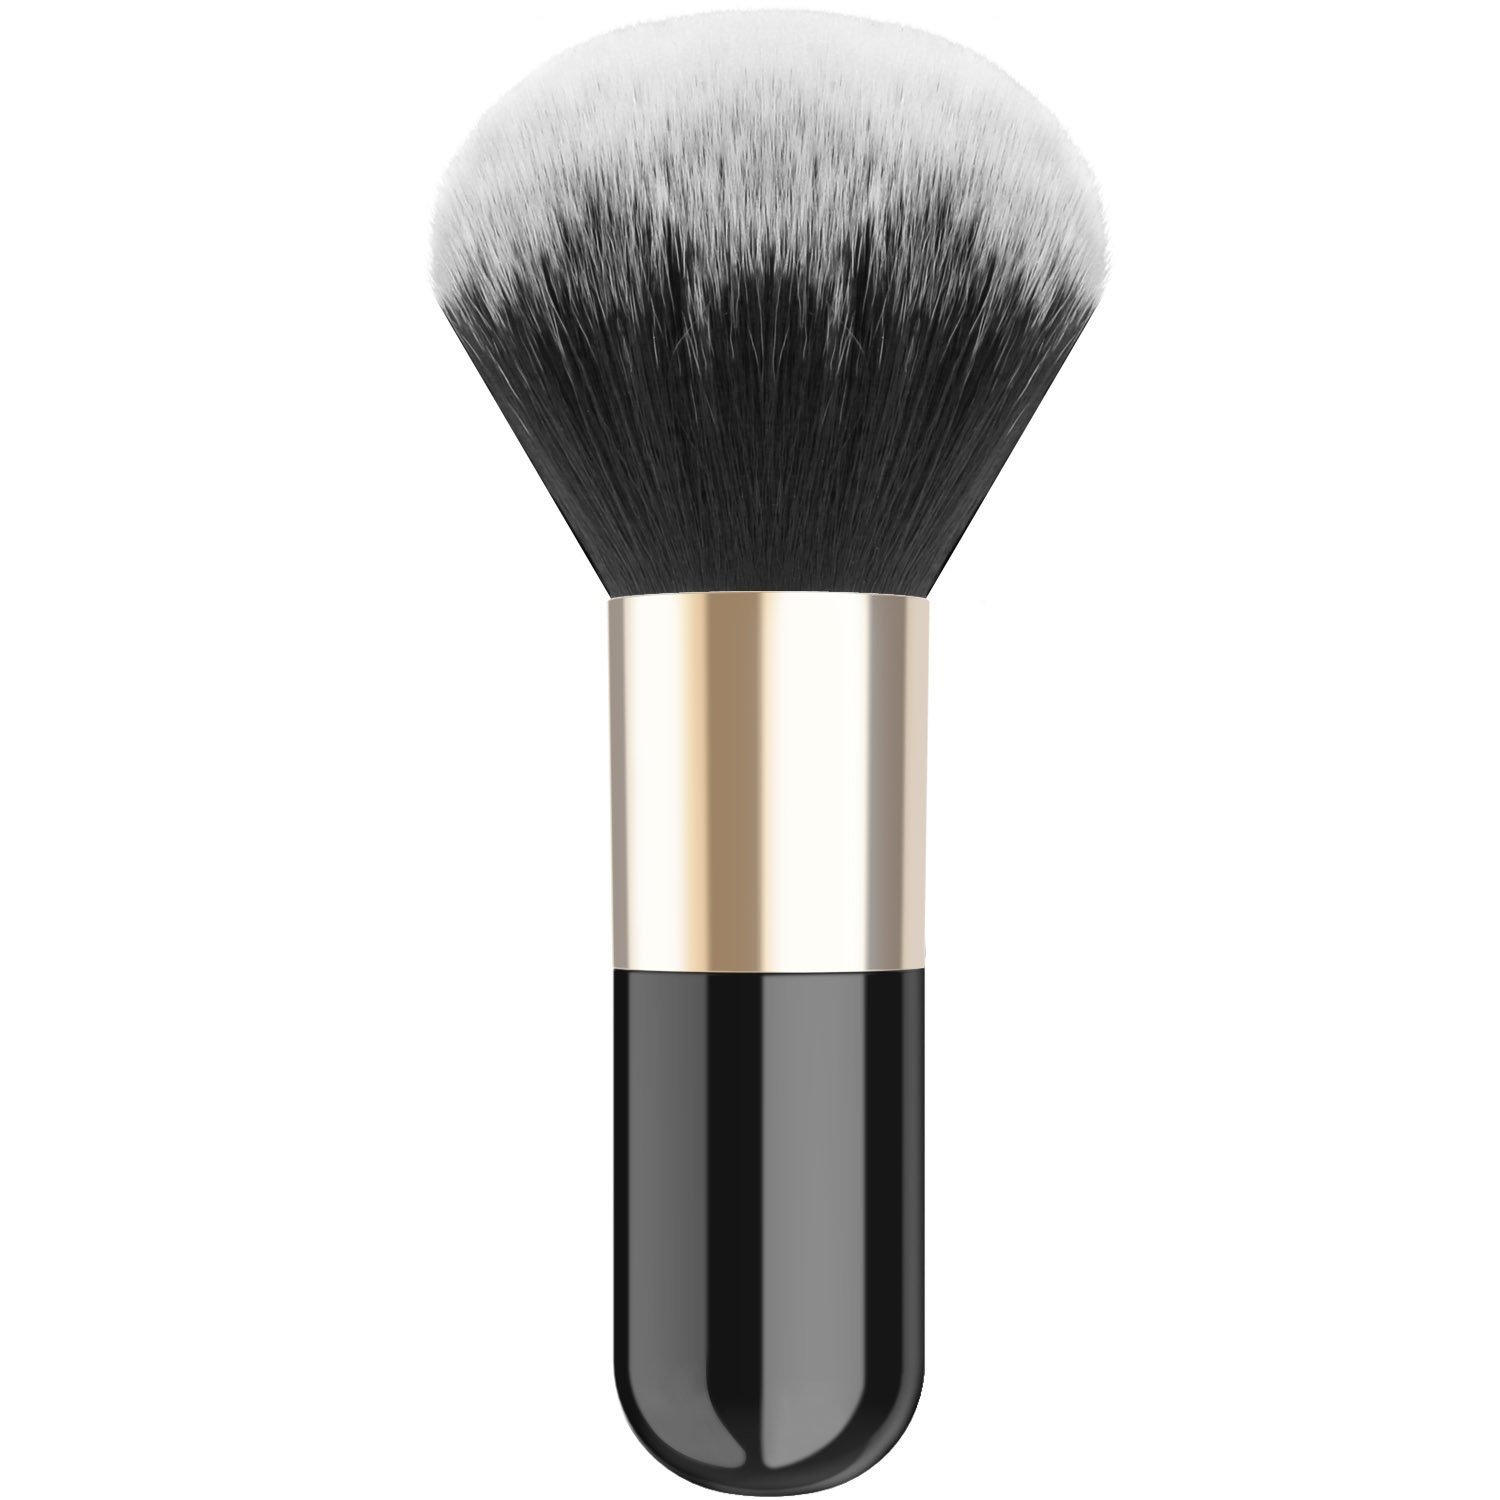 China Professional Makeup Brush Flat Kabuki Brush Single Handle Large Round Head Soft Face Mineral Powder Foundation Brush Blush Brush Cosmetics Make Up Brush China Makeup Brush And Cosmetic Brush Price